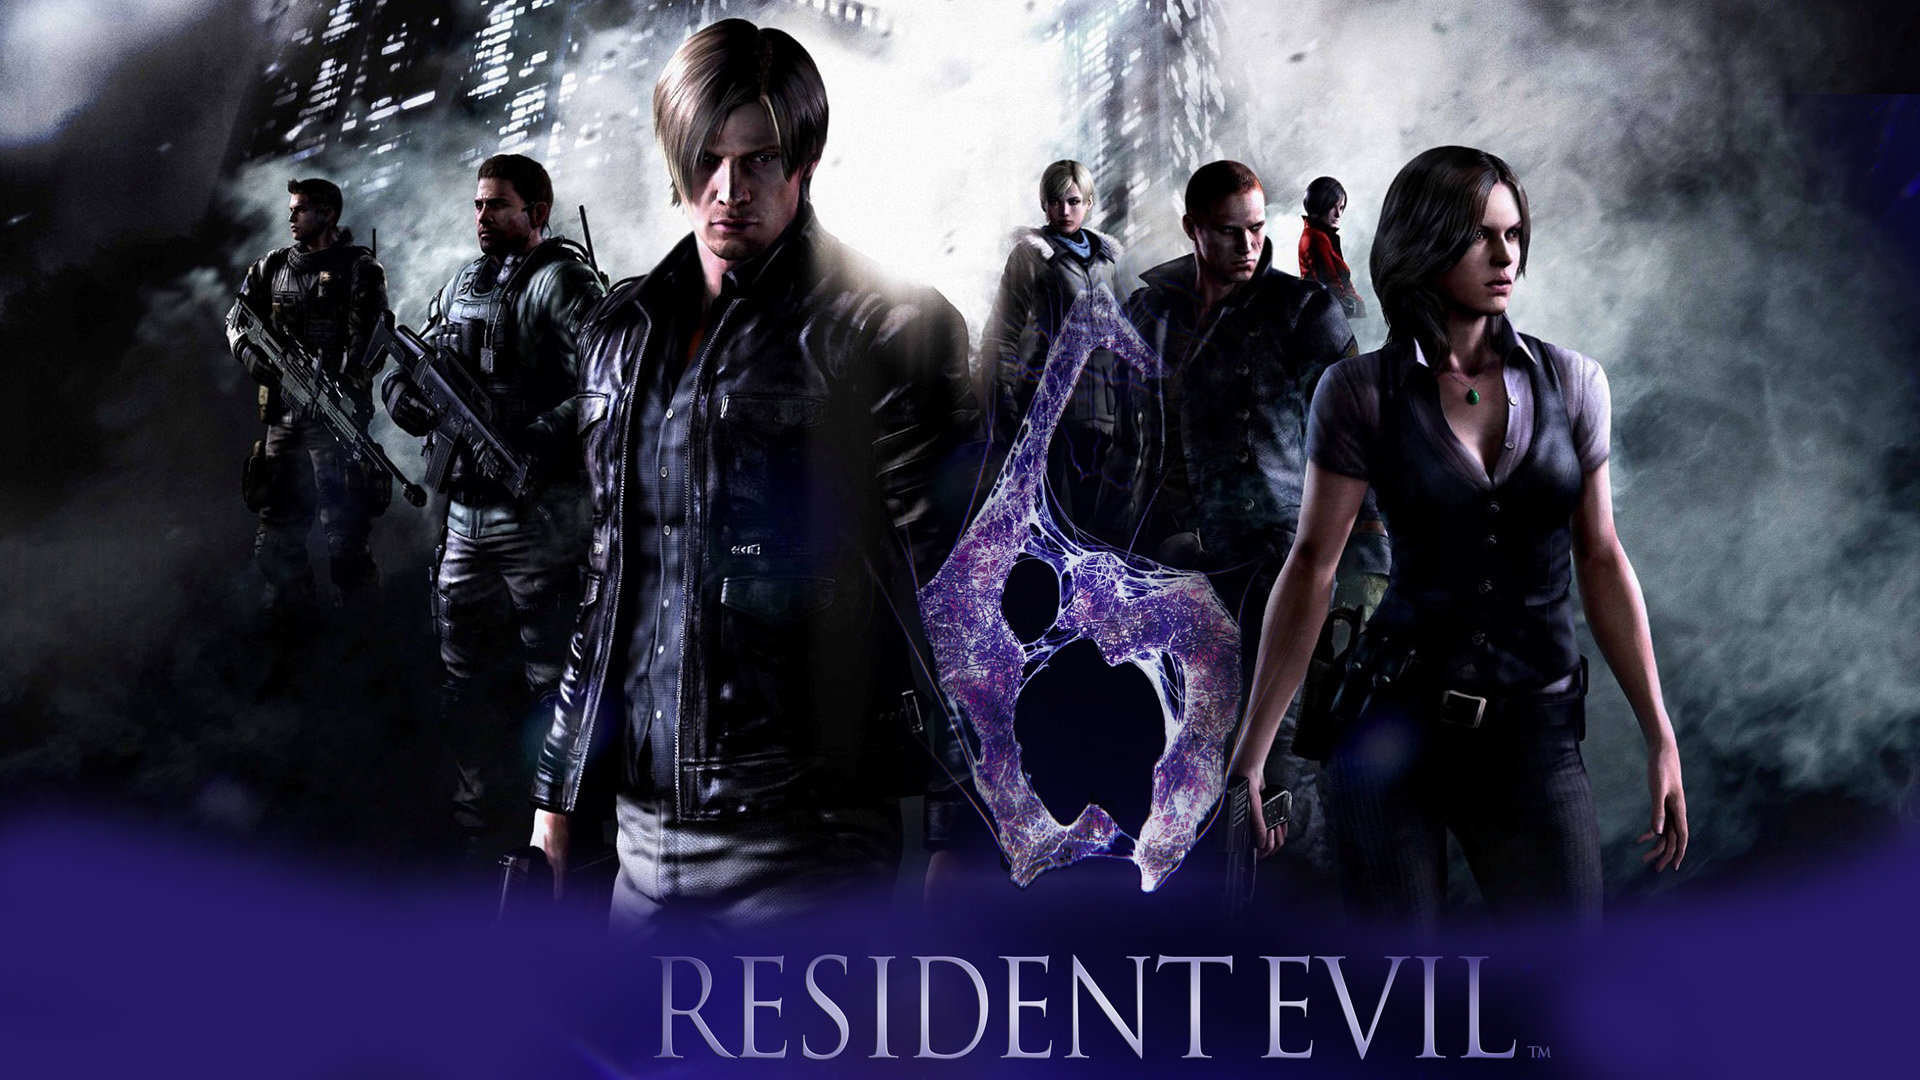 resident evil 6 1920 Resident Evil 7 Being Worked On With P.T. Dev